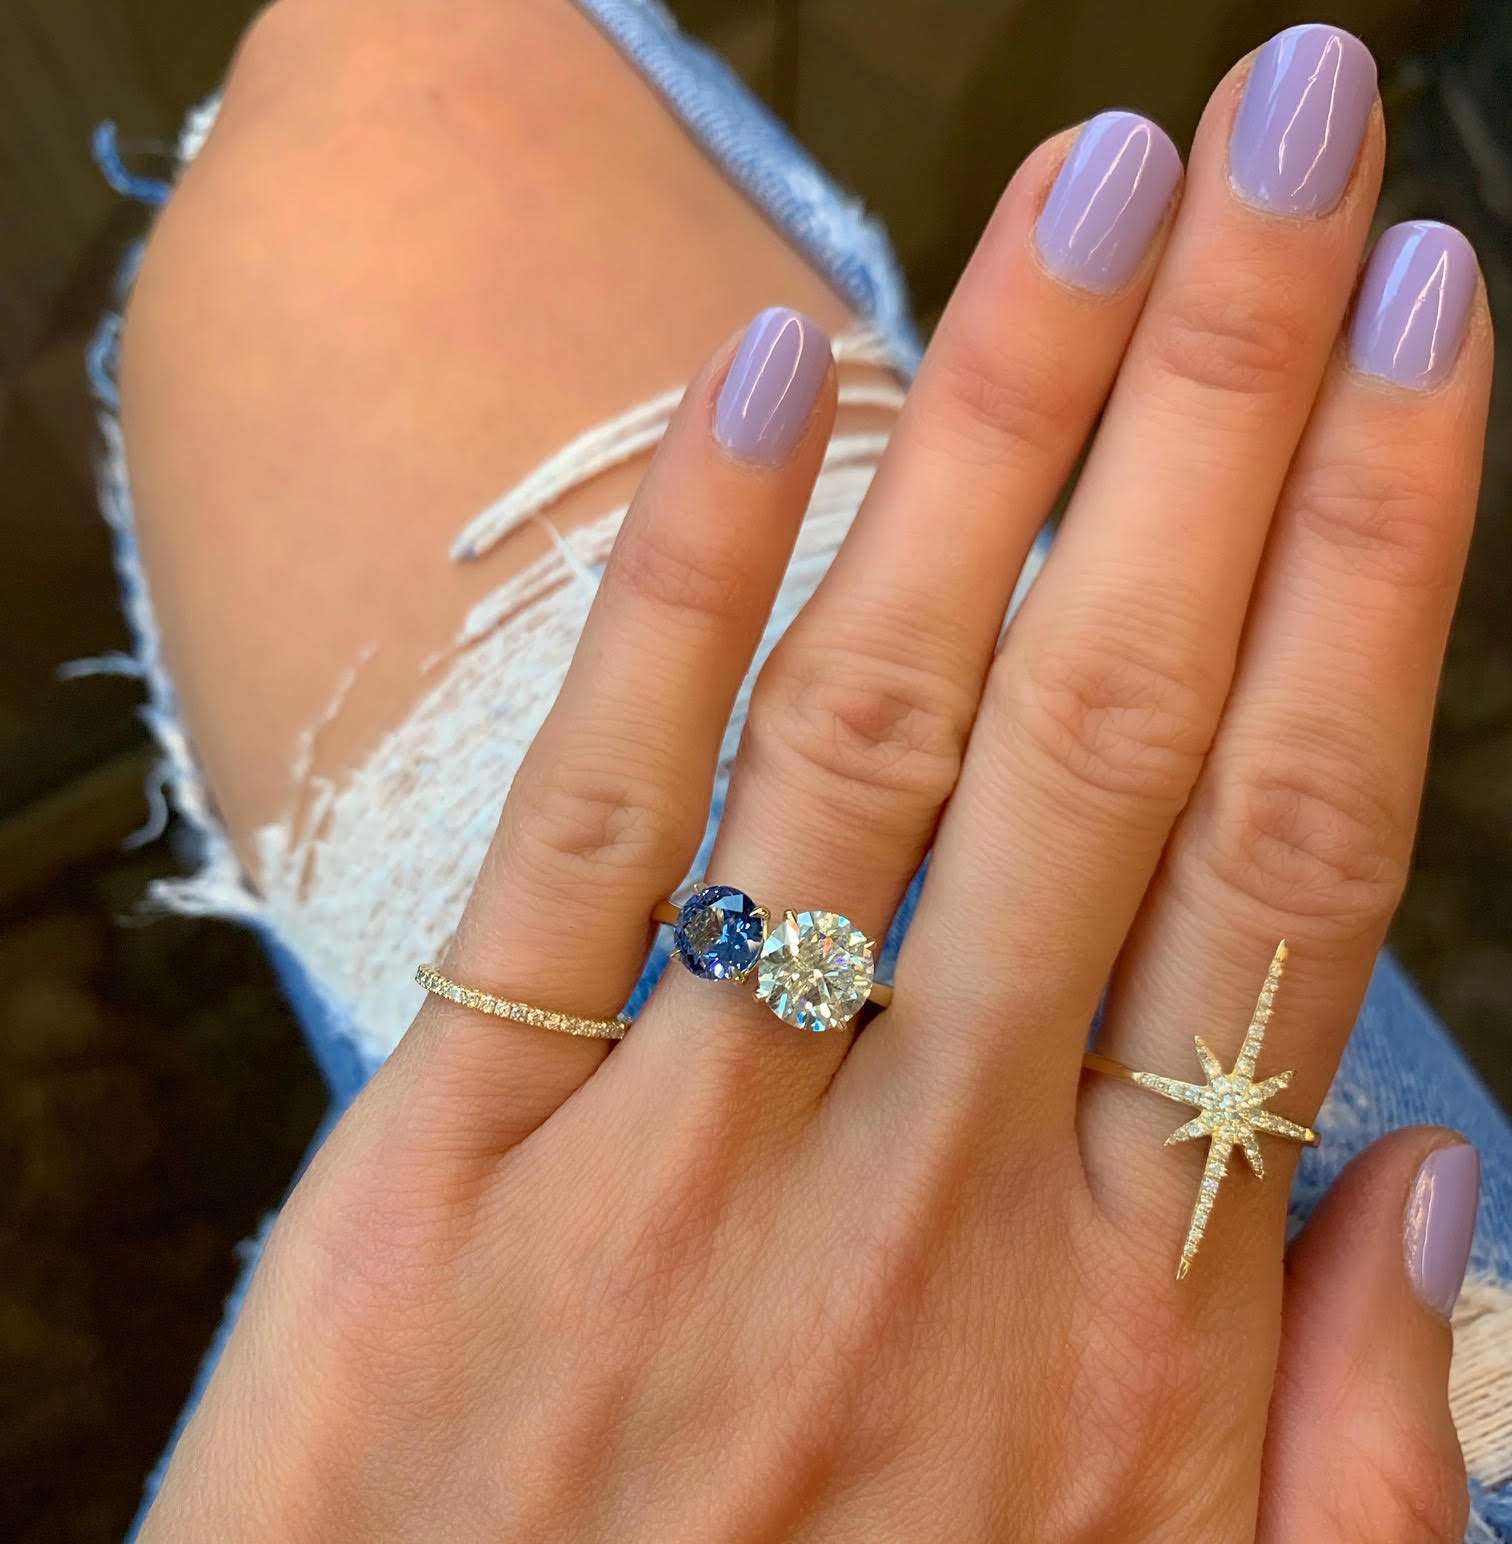 7 Engagement Ring Trends For Brides In 2020